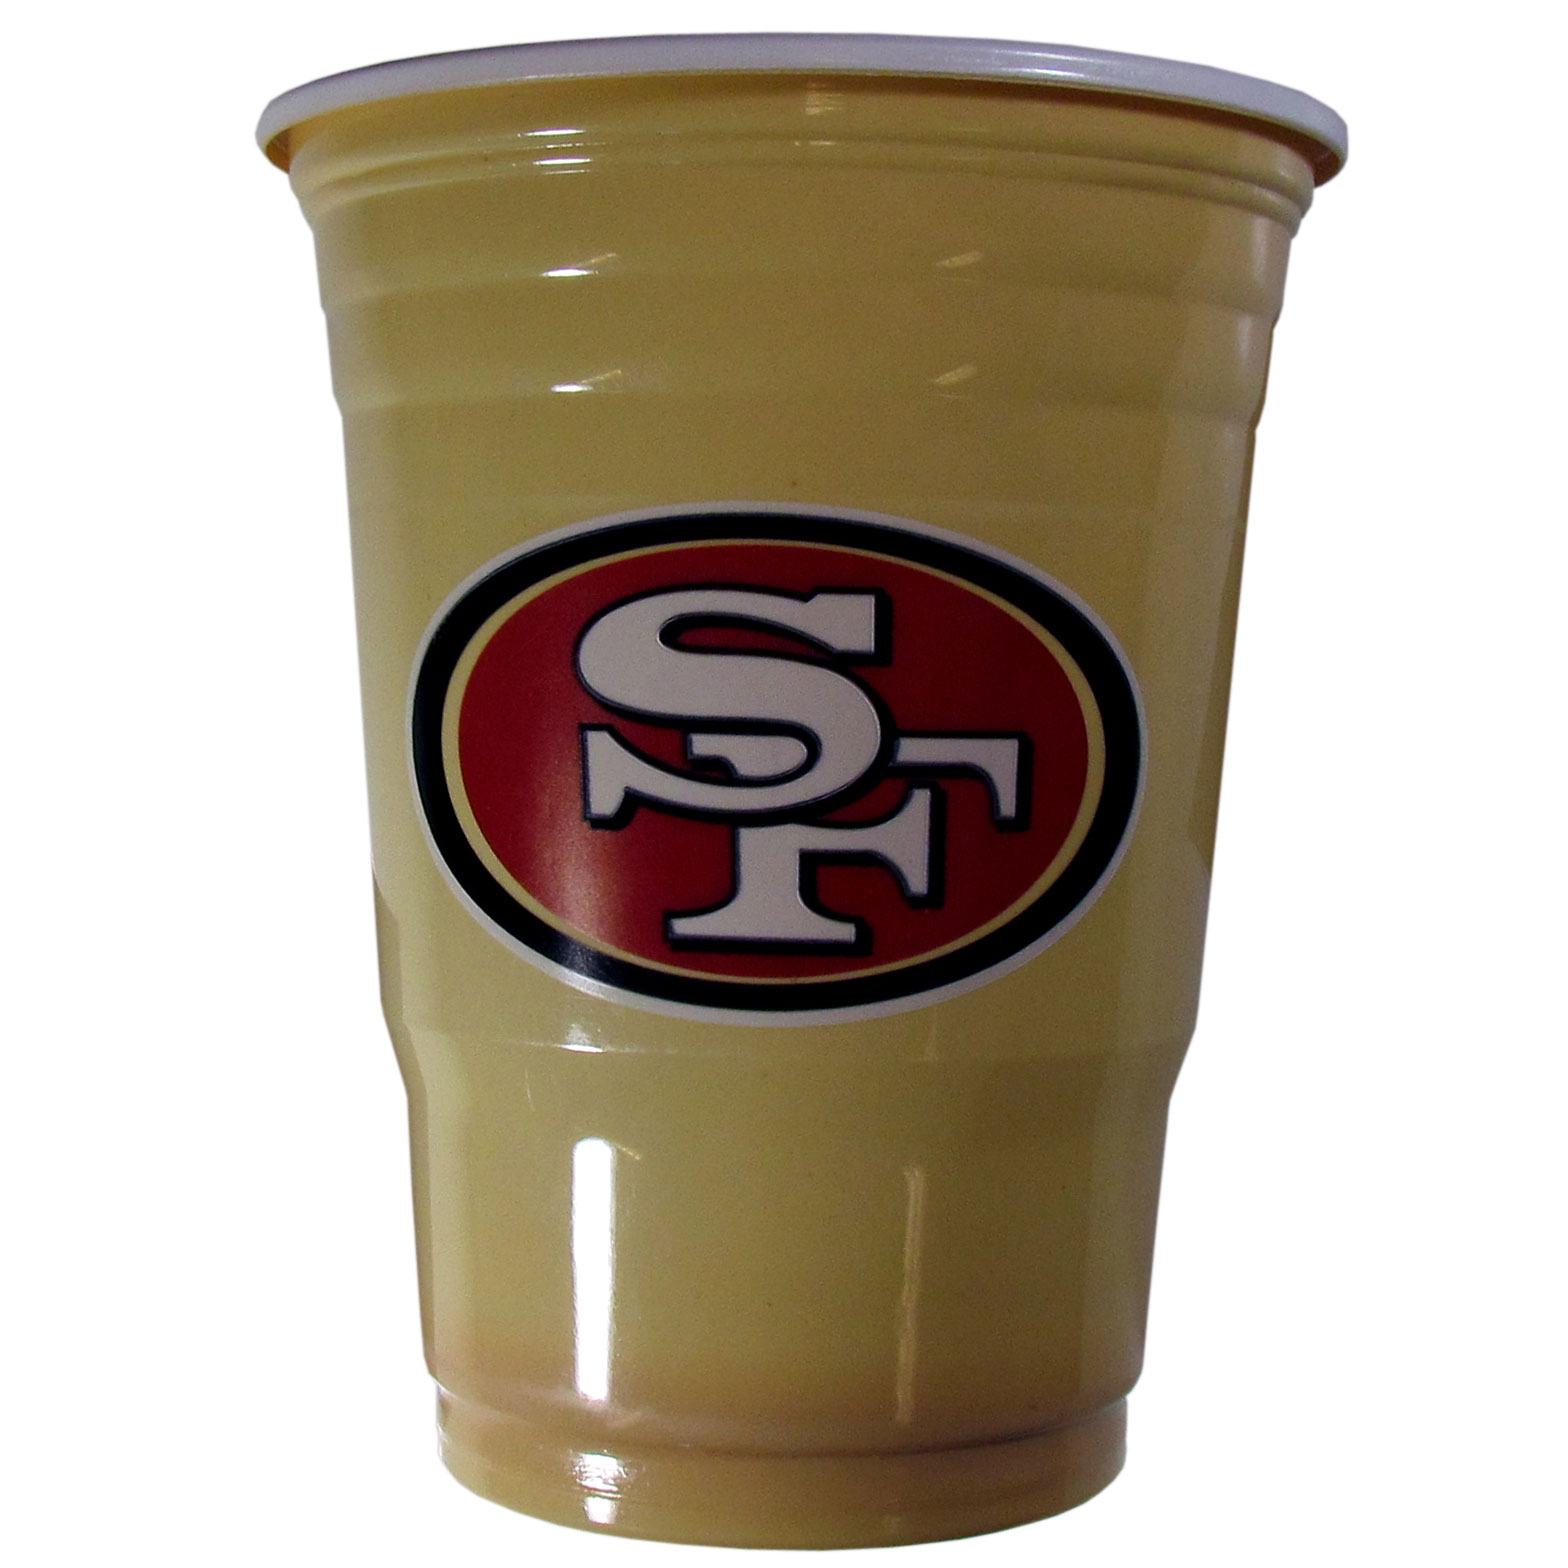 San Francisco 49ers Plastic Game Day Cups 2 sleeves of 18 (36 Cups) - Our 18 ounce game day cups are what every tailgating or backyard events needs! The cups feature a big San Francisco 49ers logo so you can show off your team pride. The popular 18 ounce size is perfect for drinks or ping pong balls! 2 sleeves of 18 cups, 36 cups in total.